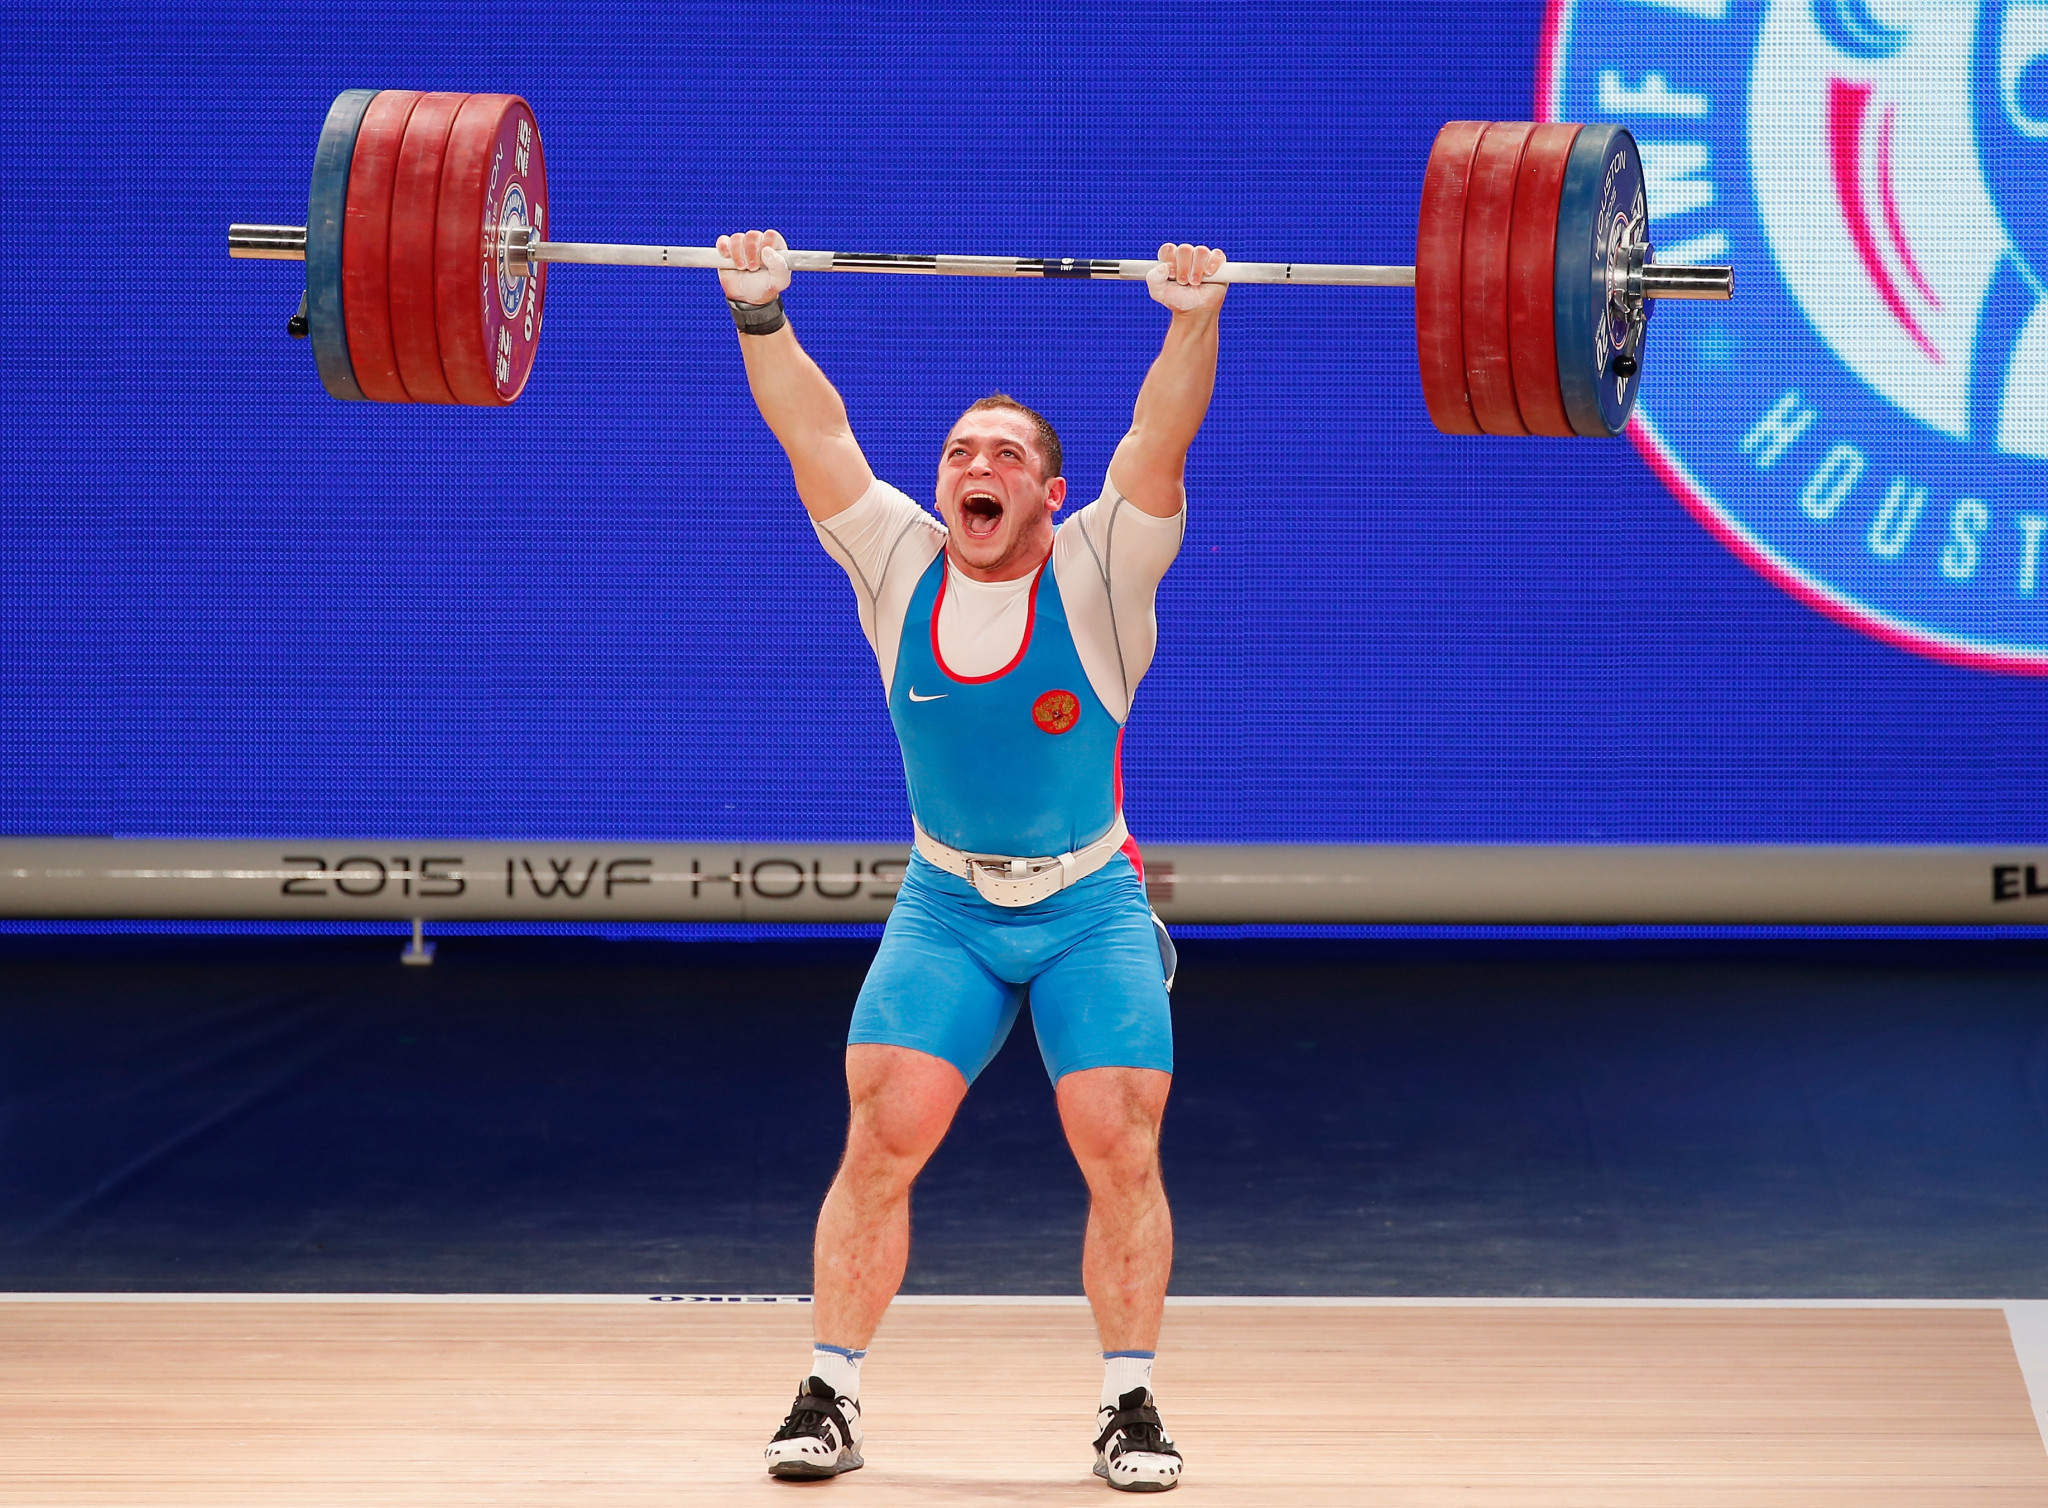 Artem Okulov was one of two Russian gold medallists at the recent IWF World Championships ©Getty Images